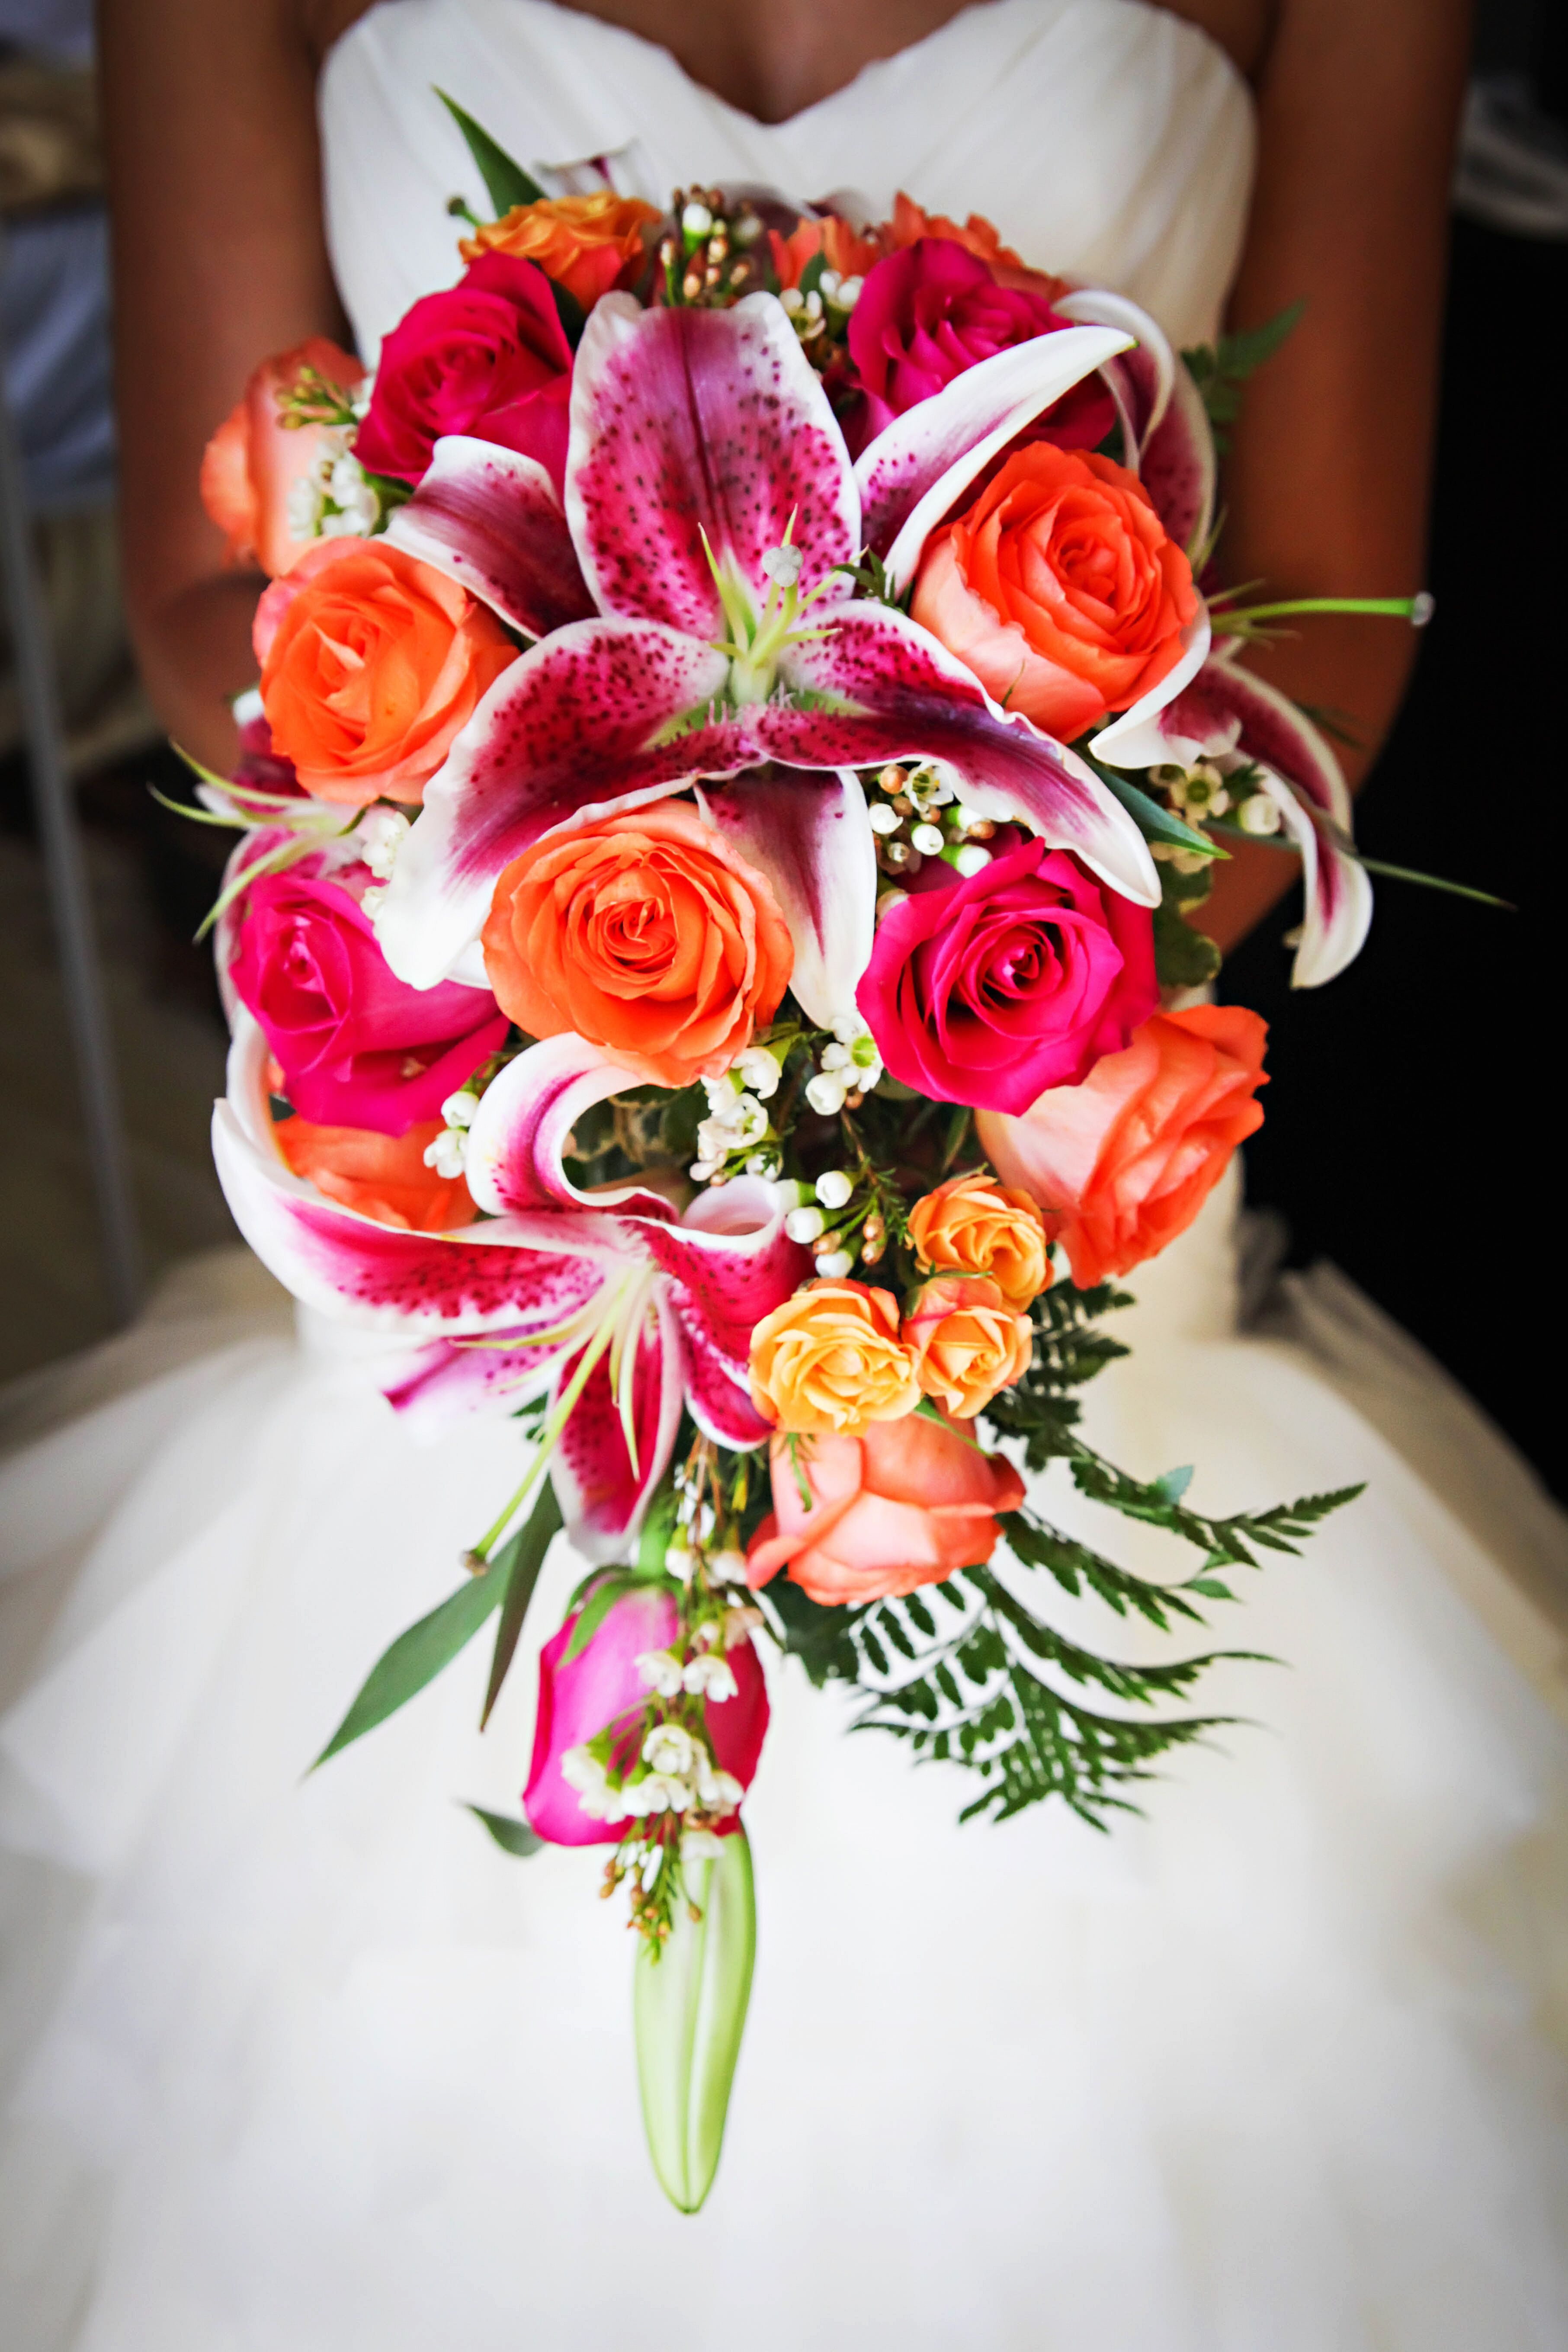 Stargazer Lily And Hot Pink Rose Bouquet